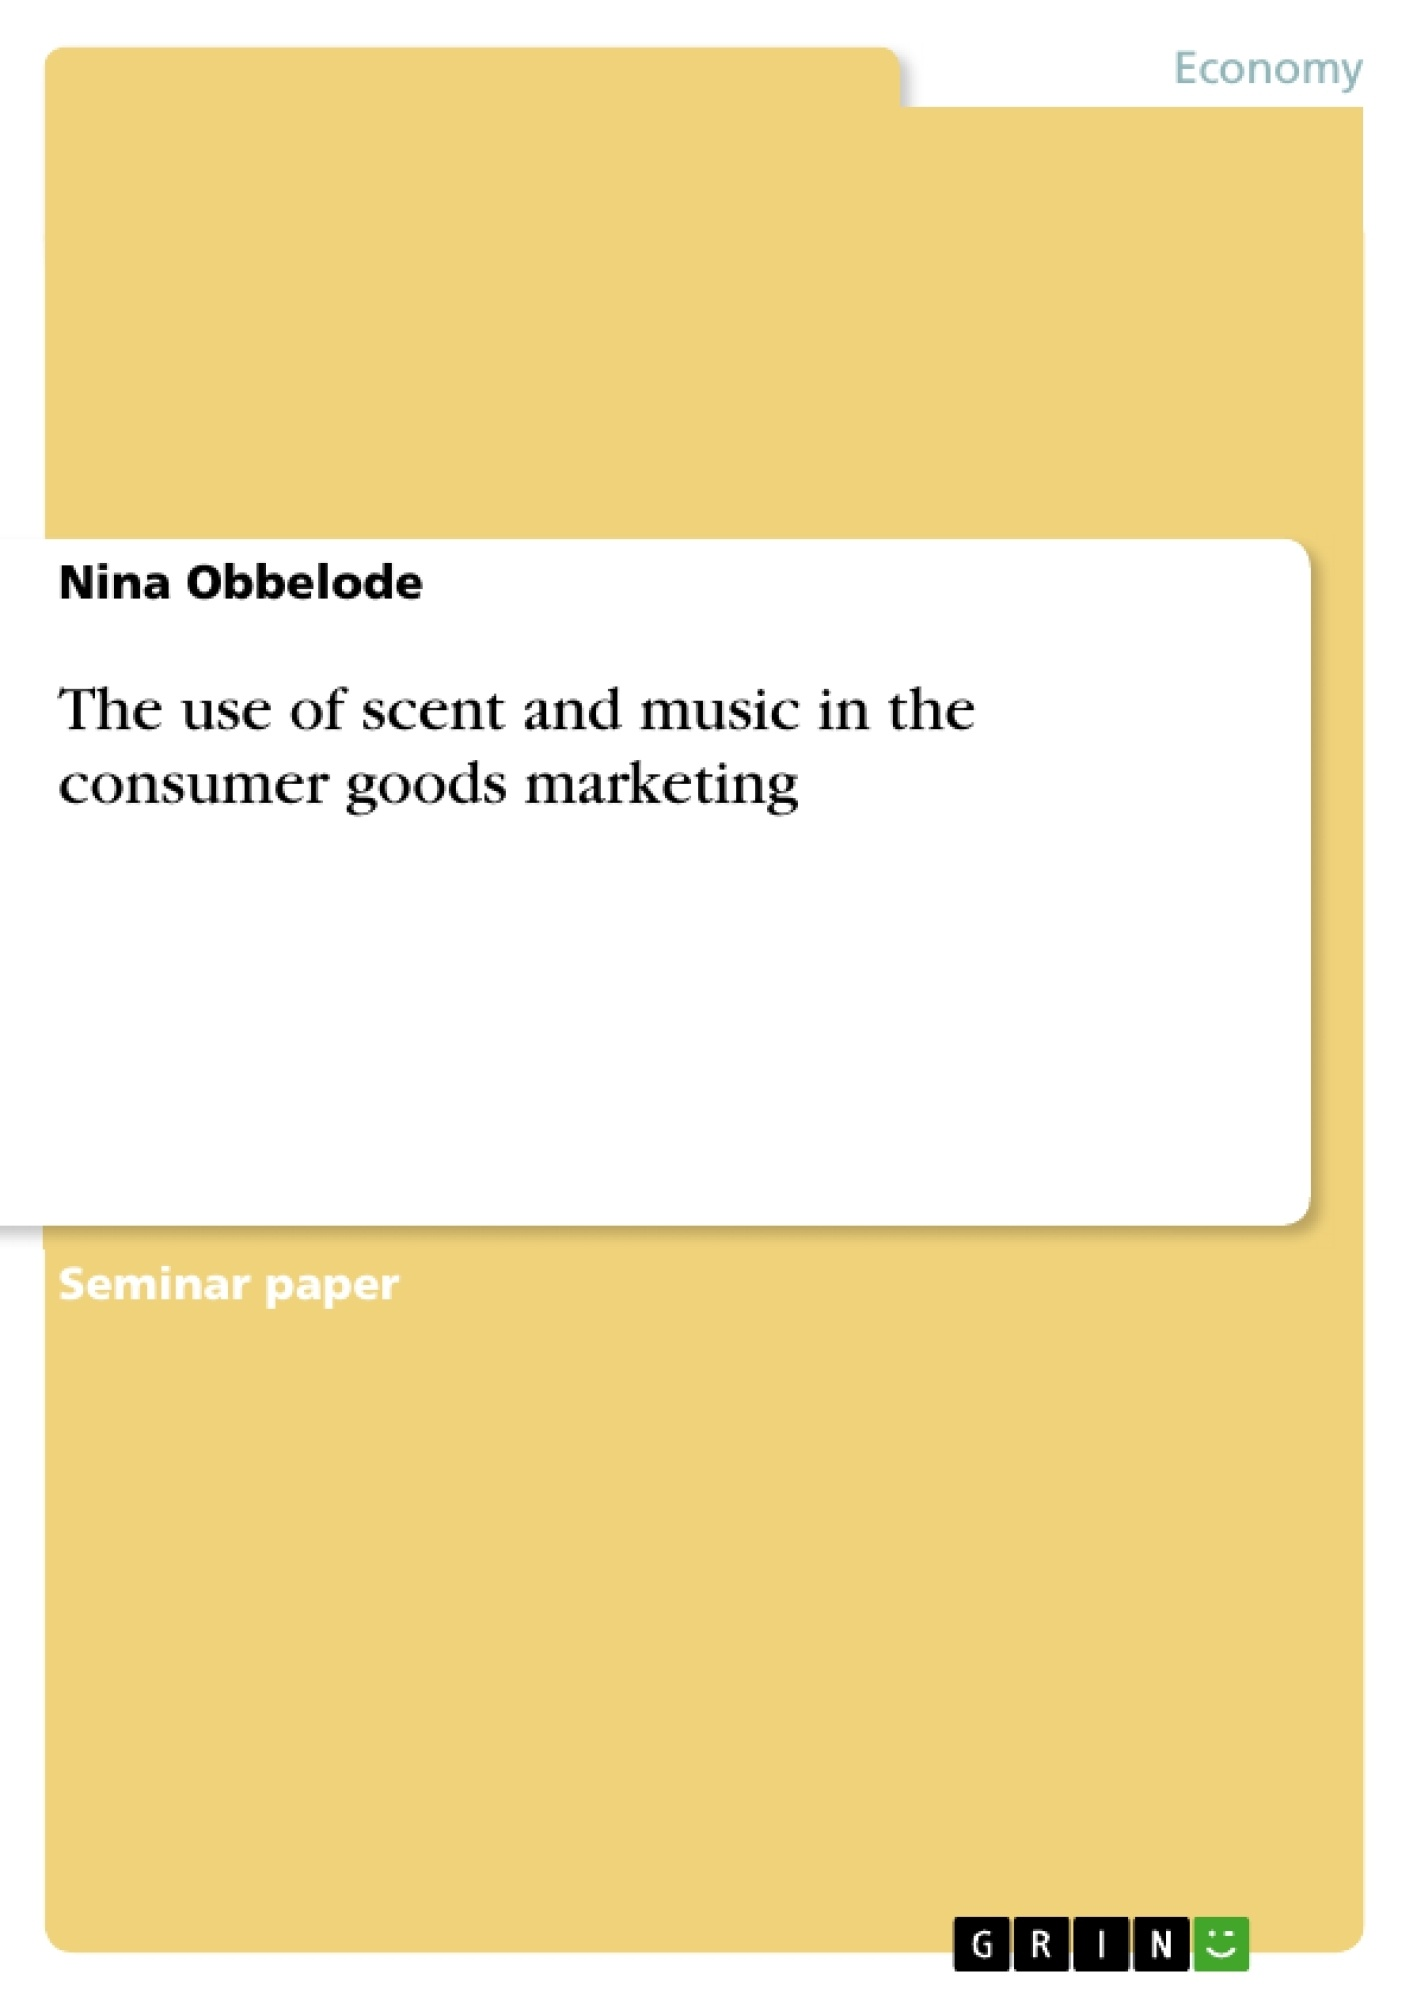 Title: The use of scent and music in the consumer goods marketing